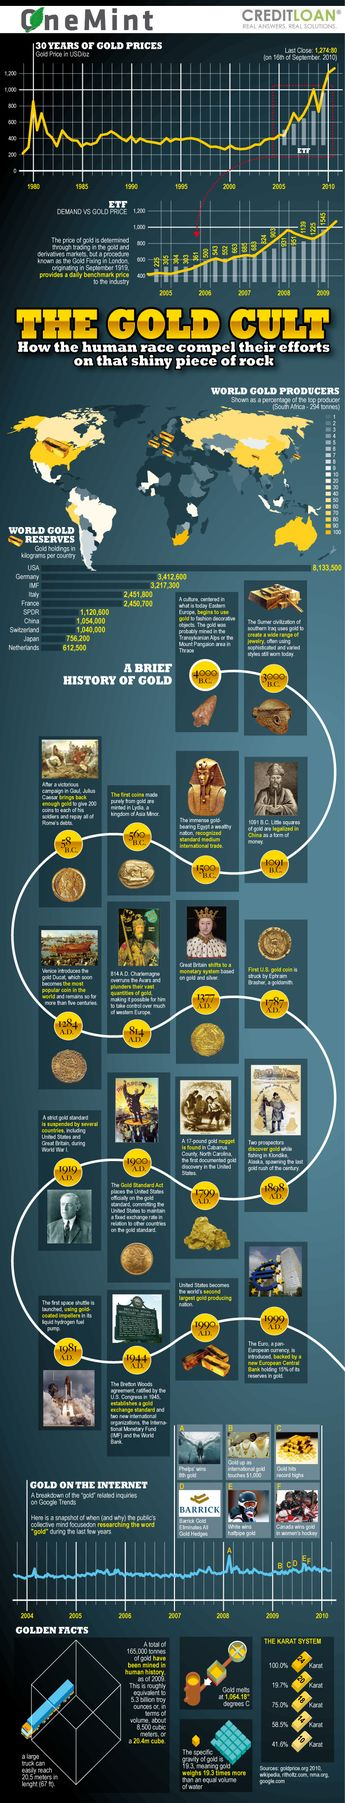 Gold Prices and their determination  #goldprices #goldcult #history